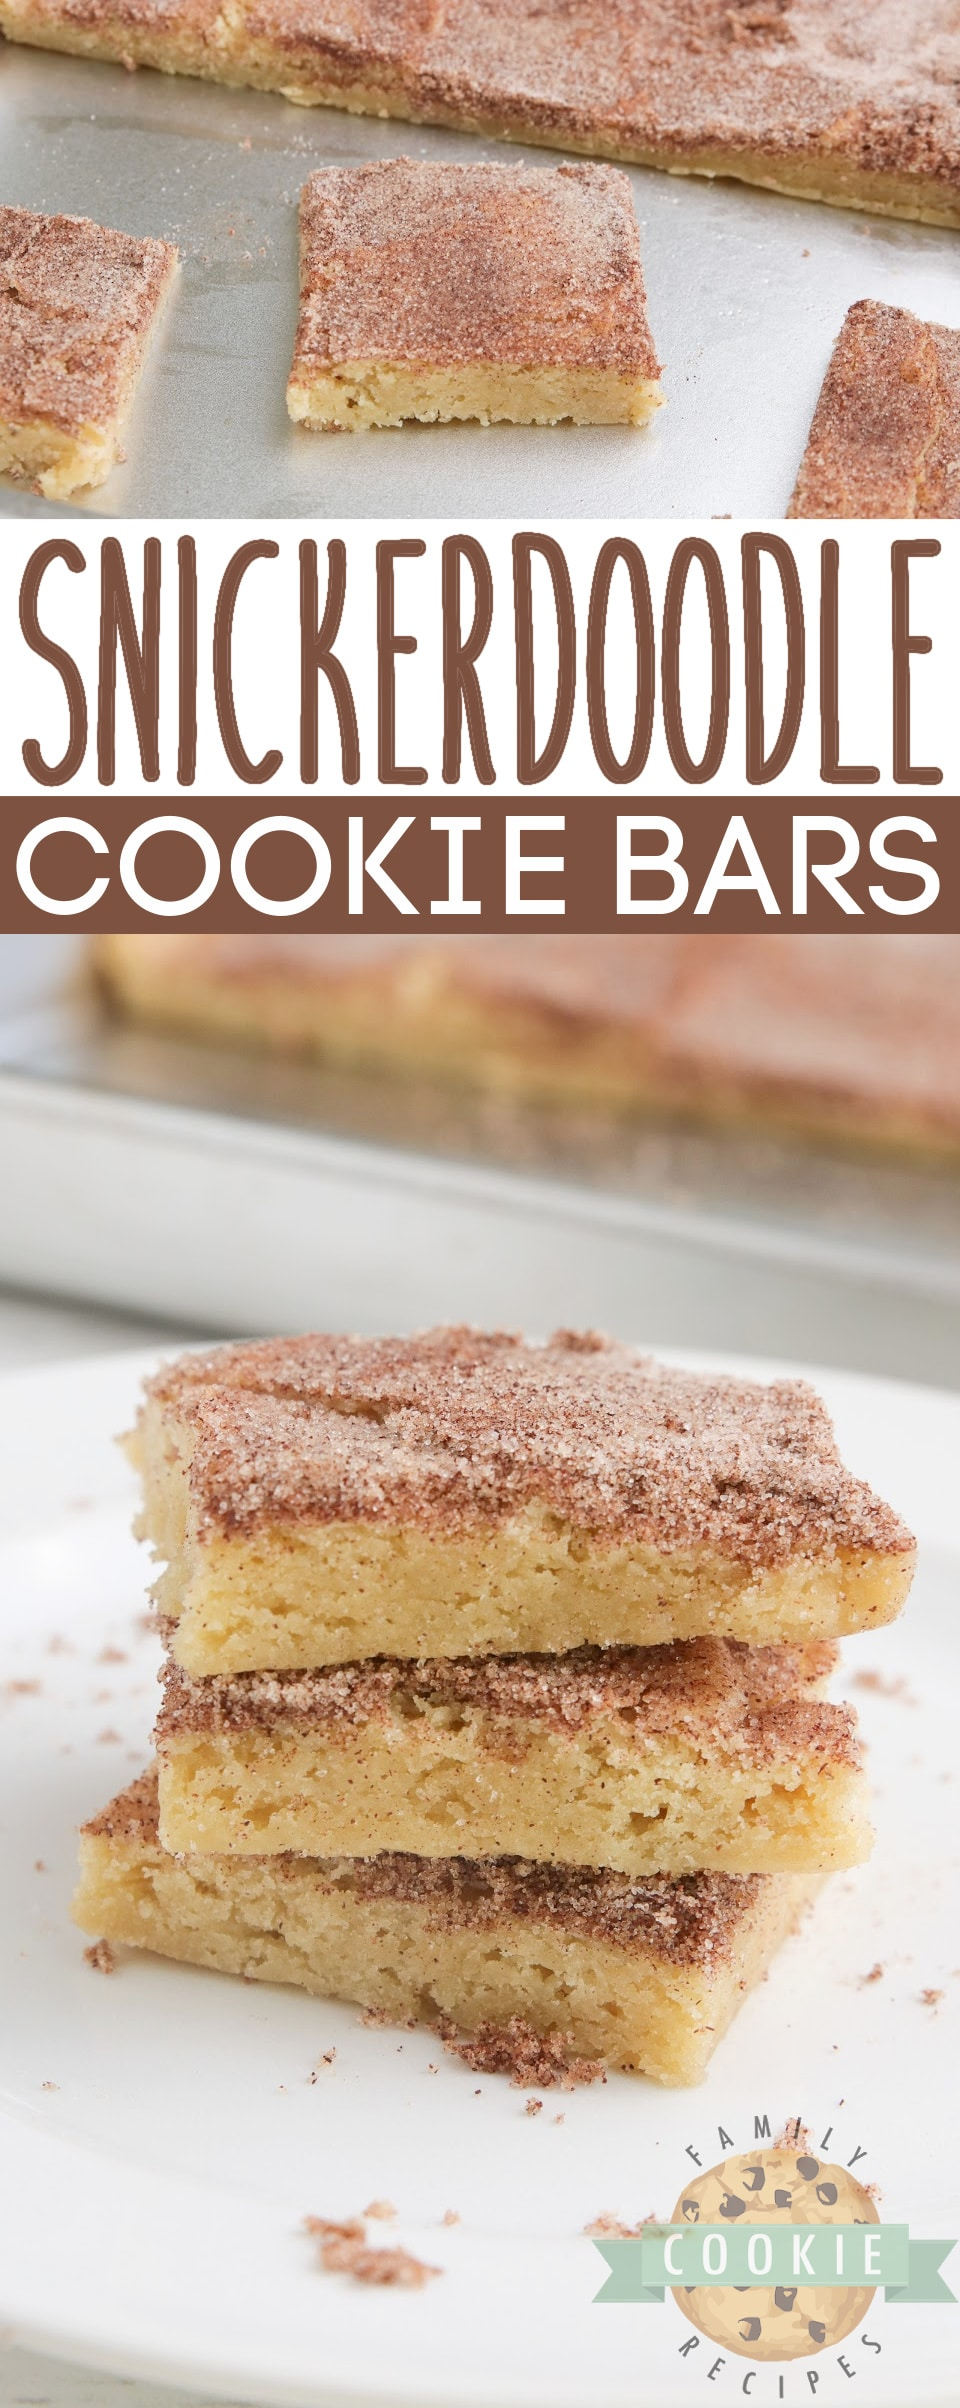 Snickerdoodle Cookie Bars are soft, delicious and packed with that cinnamon flavor we all love! Simple snickerdoodle recipe that is made in a sheet pan and can be easily sliced and served. via @familycookierecipes